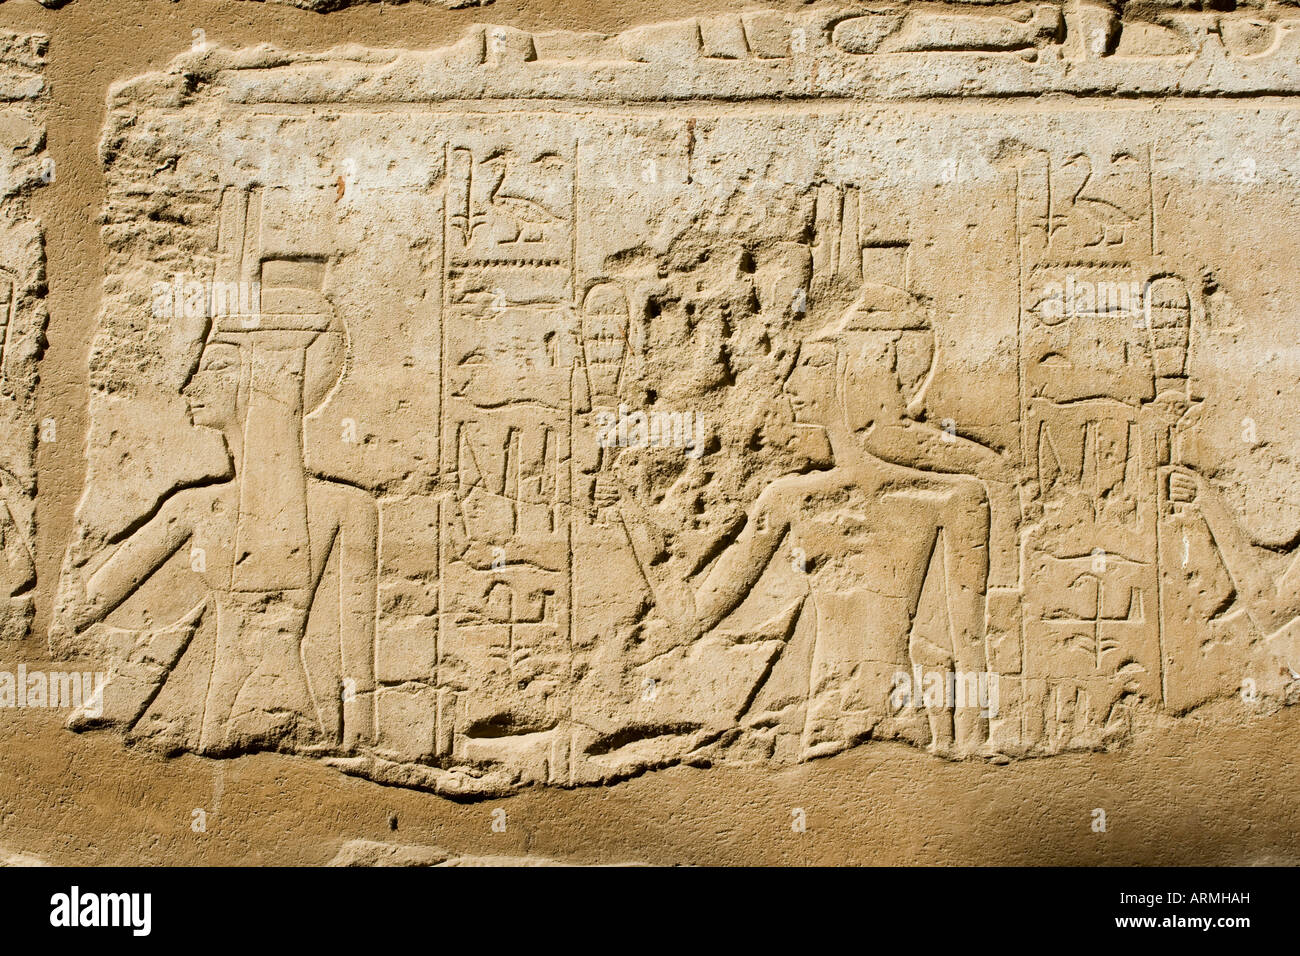 Hieroglyphs in the Luxor Temple - Stock Image